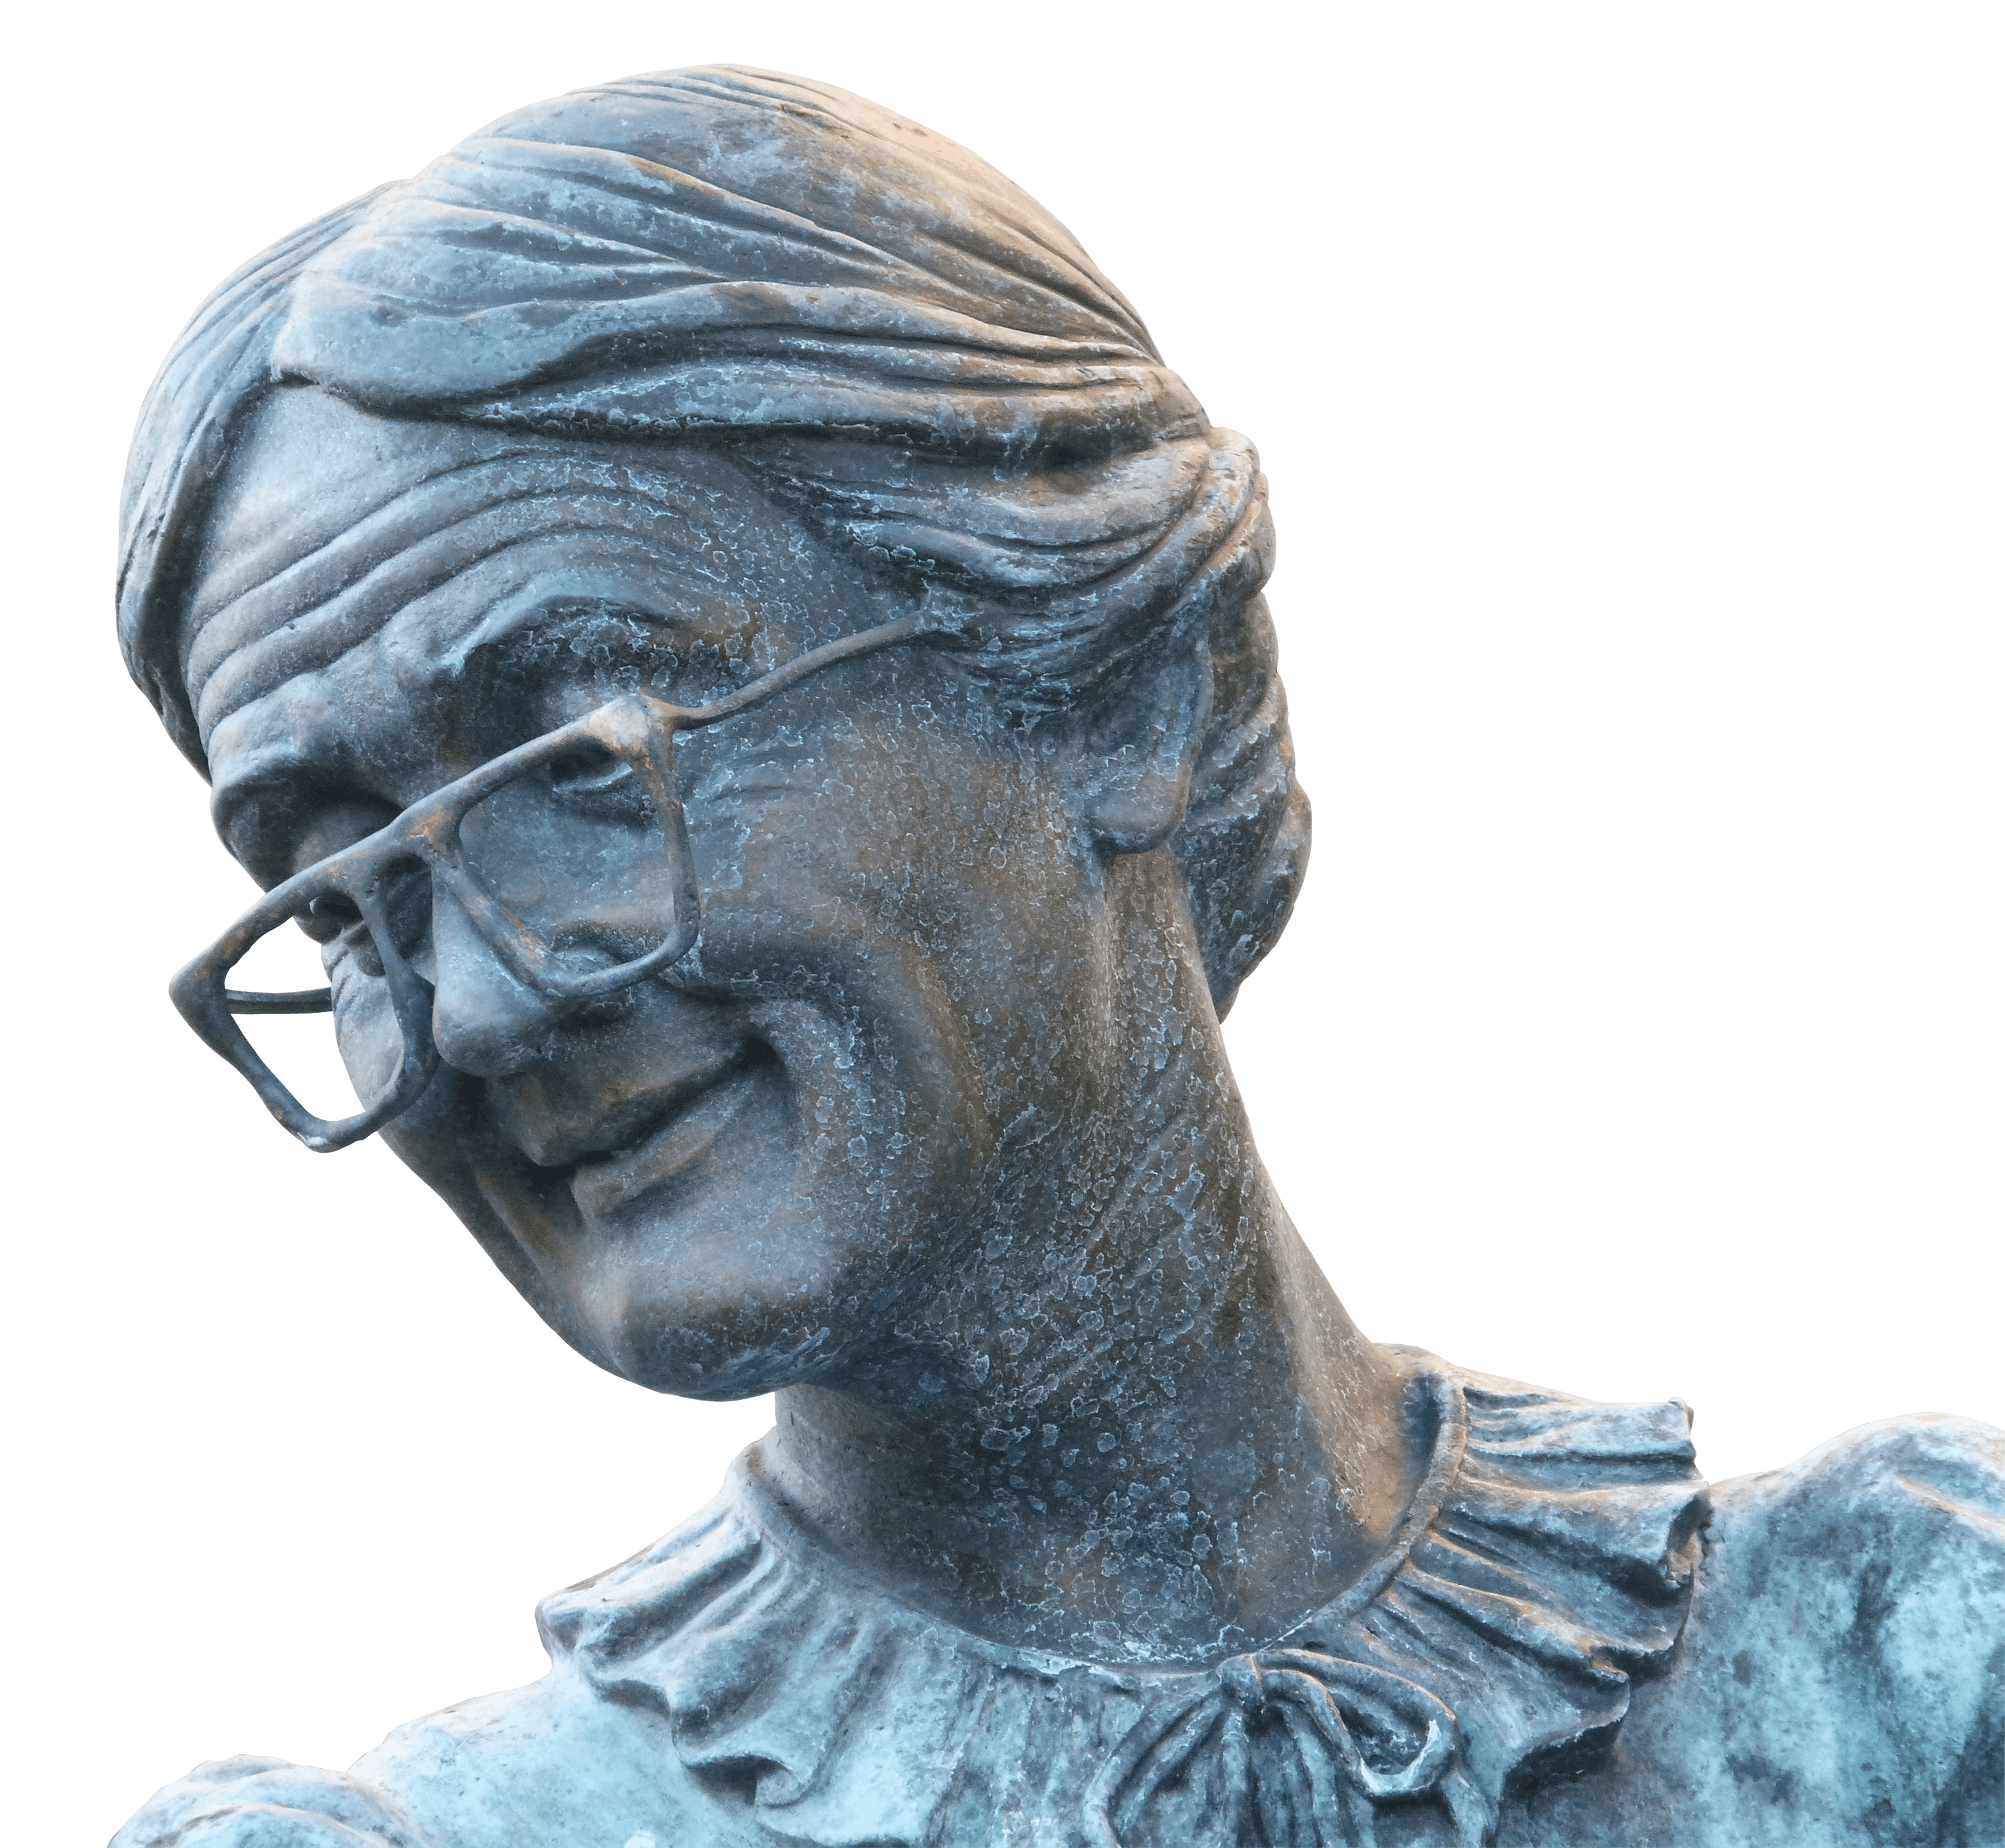 Free stock photo of woman, statue, face, sculpture